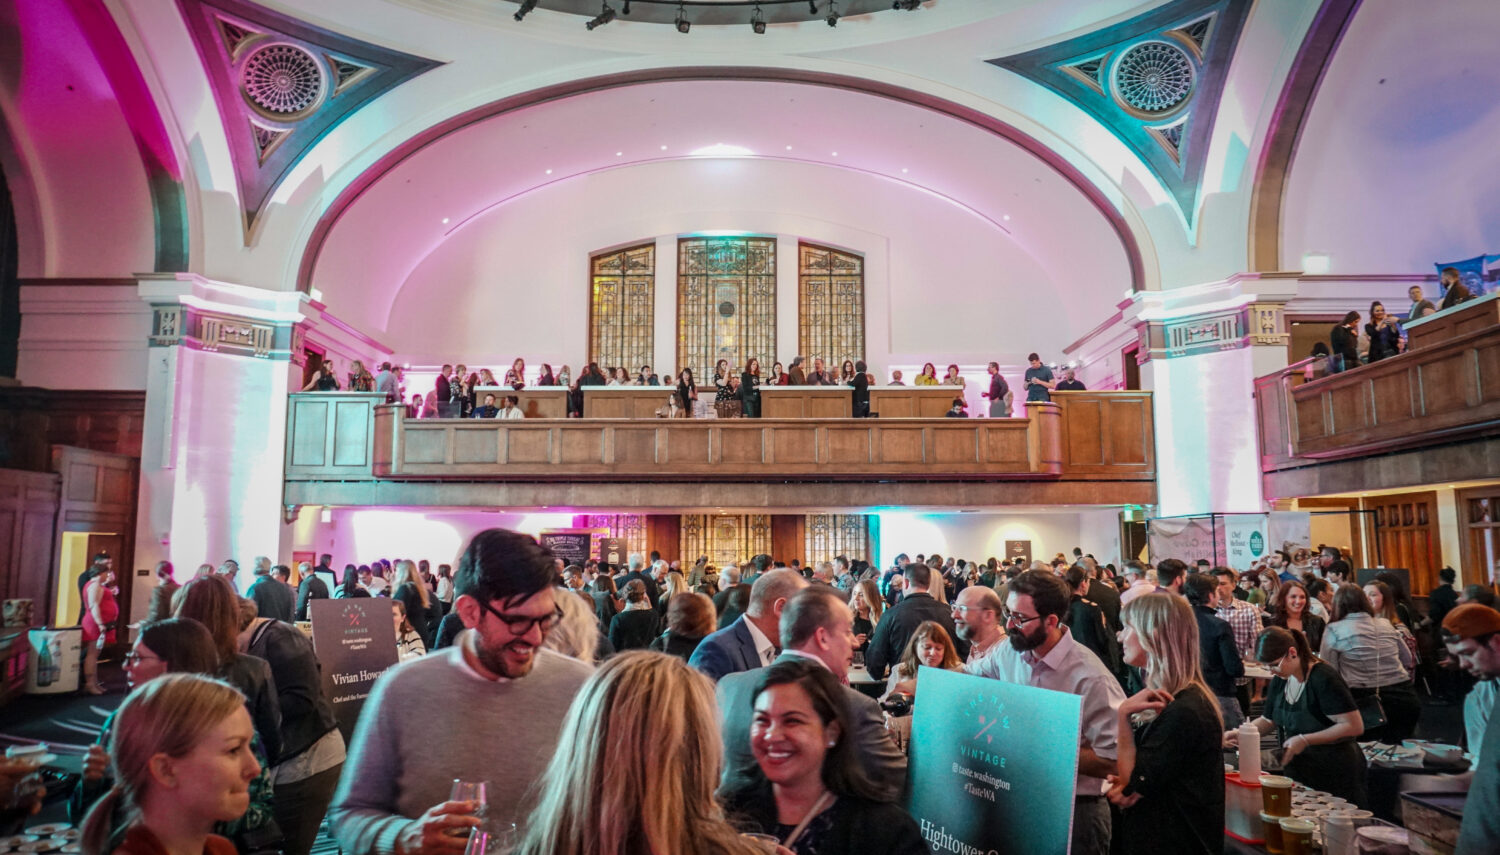 A crowd of people mill in a large room with tall ceilings painted white, pink, and blue.